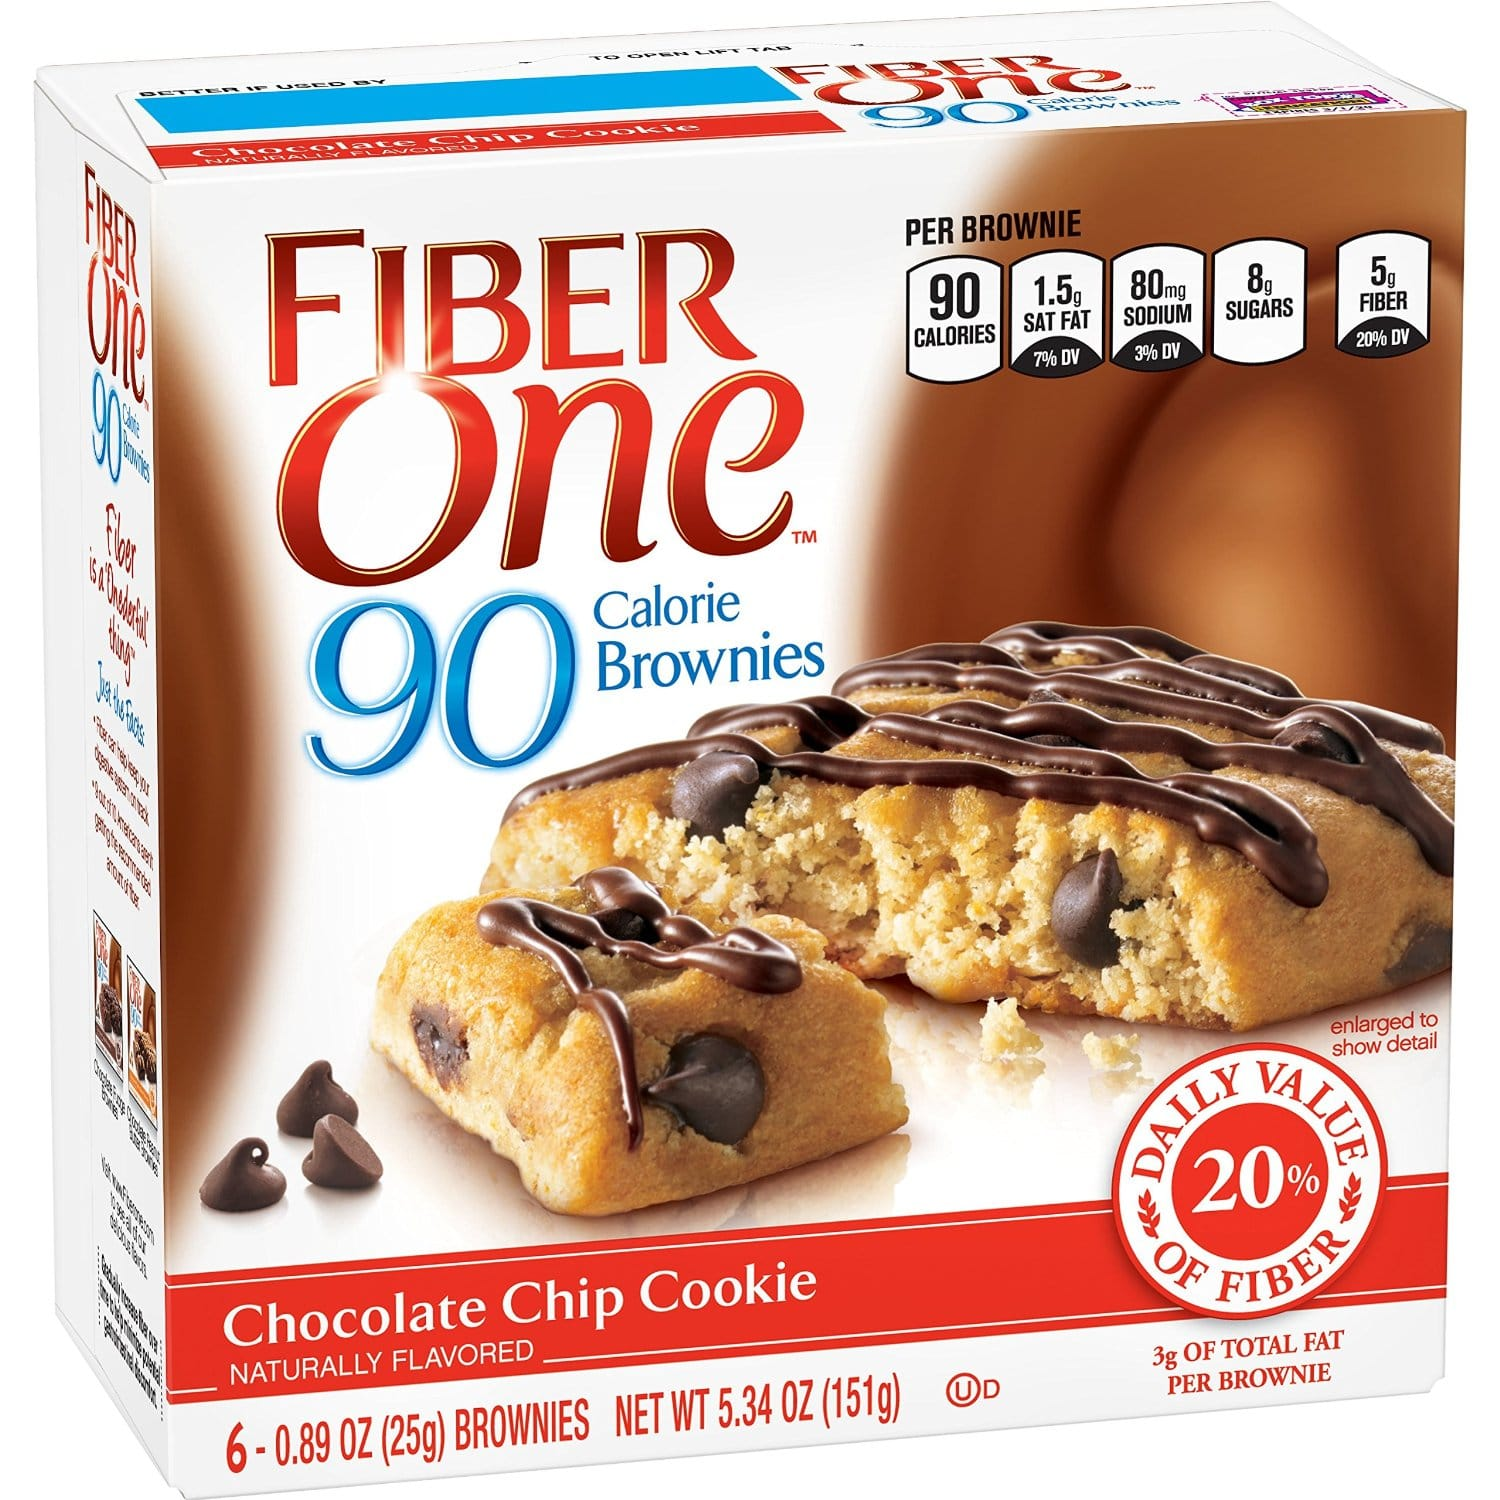 6-Count Fiber One Soft-Baked Chocolate Chip Cookie Bars - As Low As $1.62 - Amazon S&S